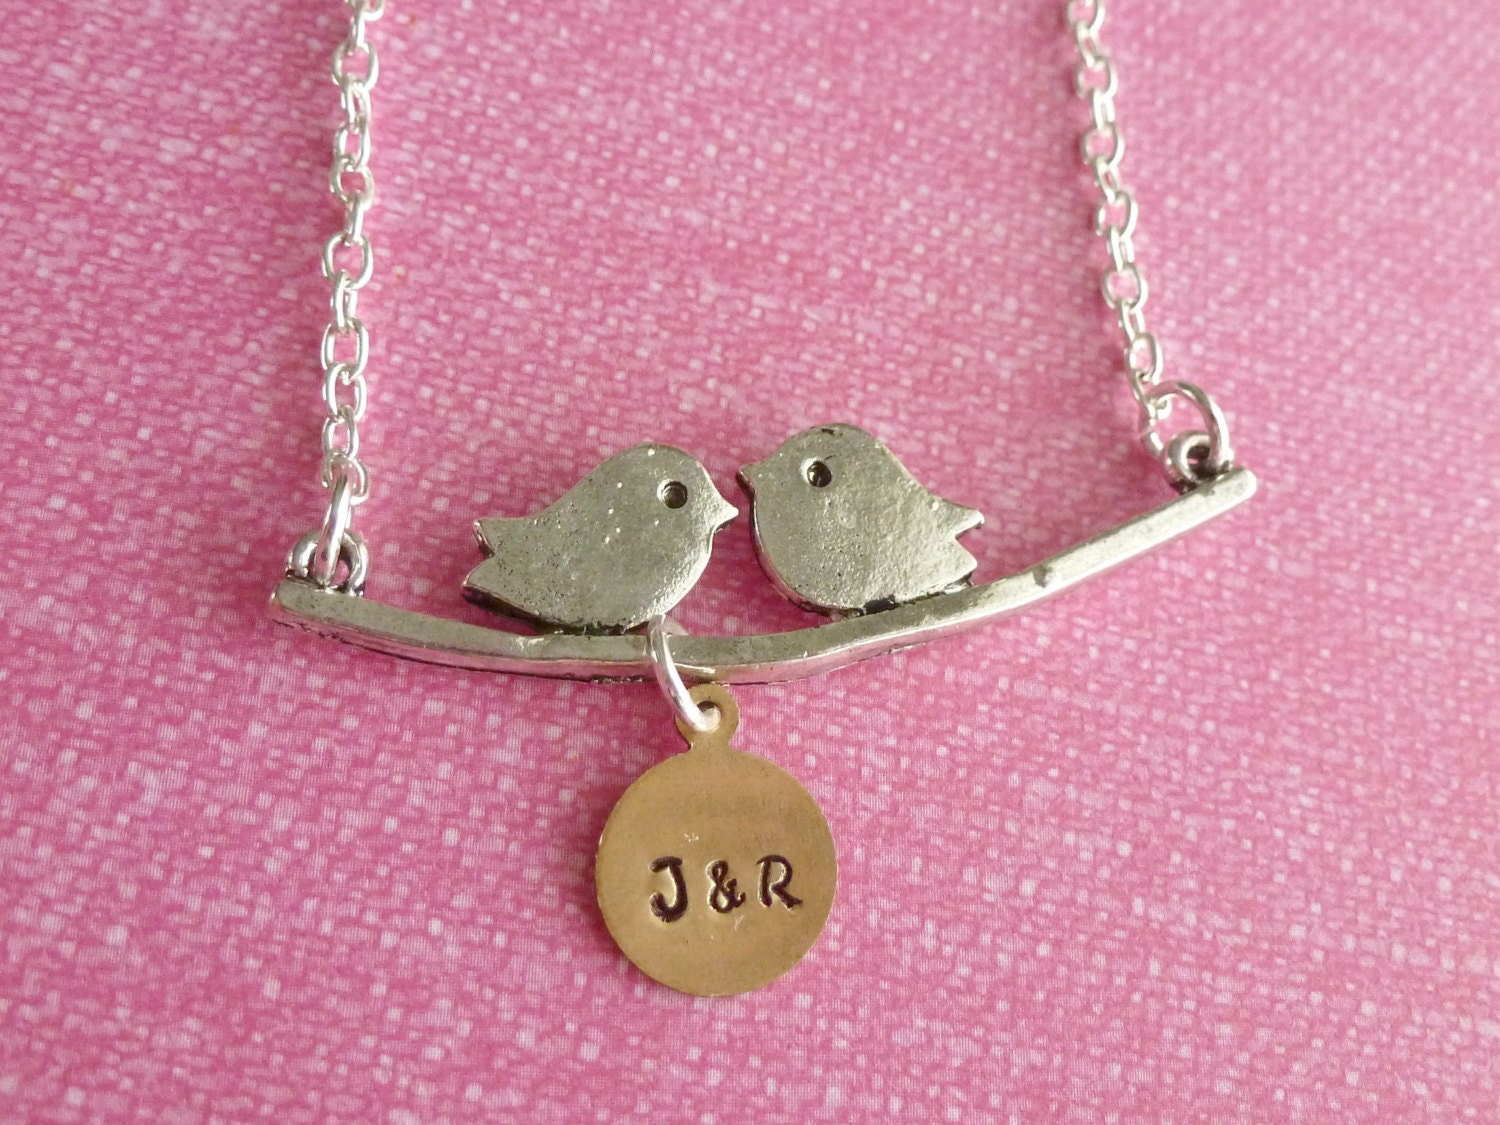 Gifts for her personalized gifts love bird necklace mom gifts for Engravable gifts for her